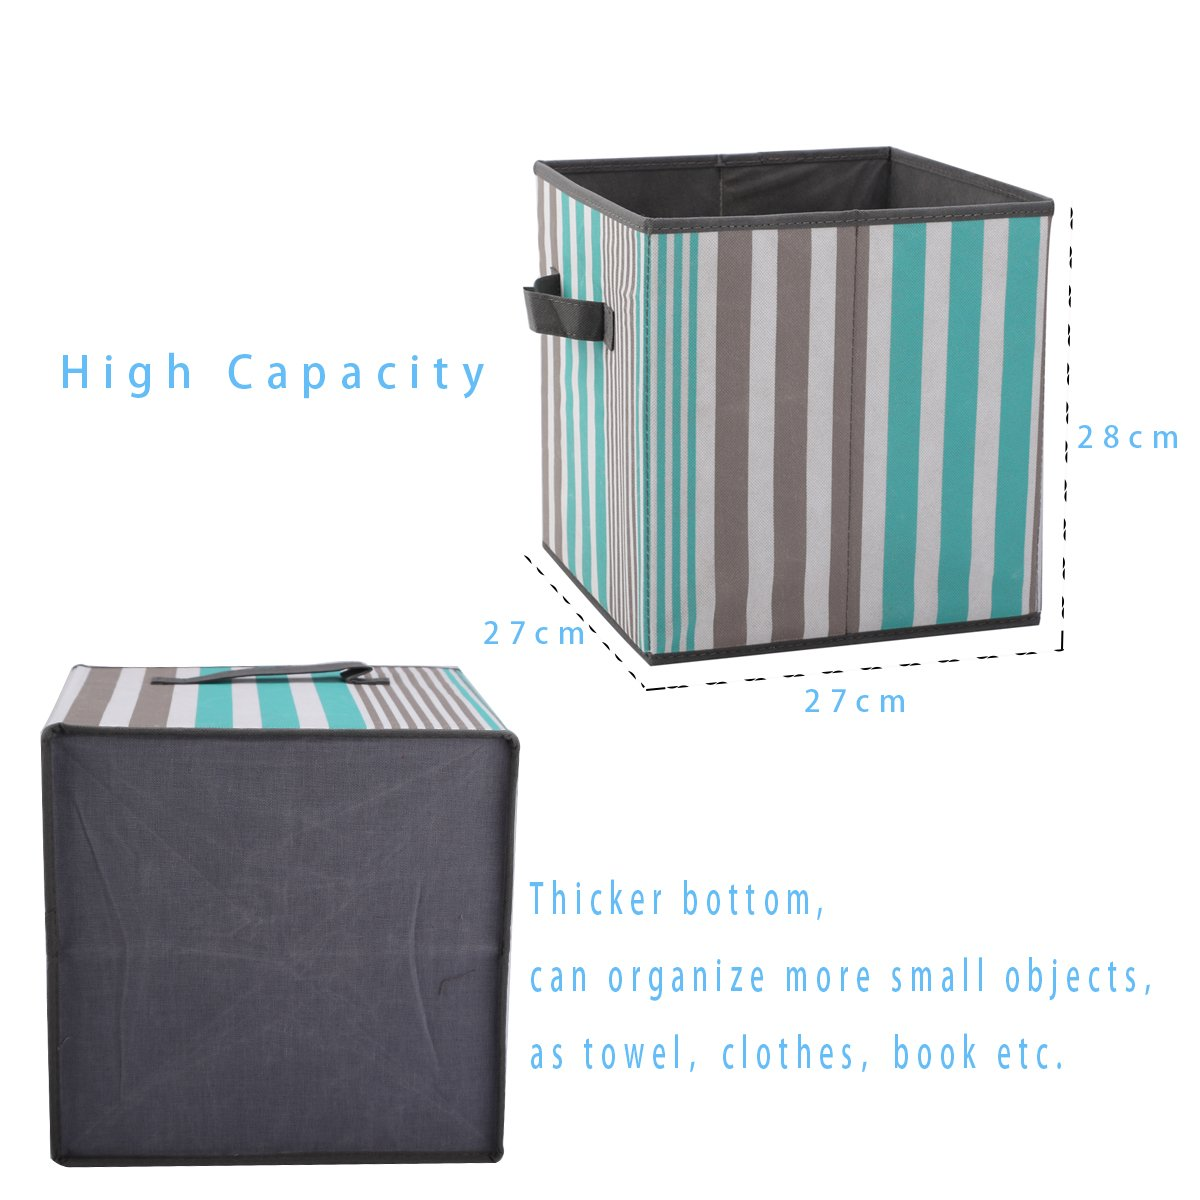 SbuyCoo Cloth Storage Bins, Set of 2 Foldable Fabric Storage Cubes Containers Organizers Basket with Dual Handles for Home, Office & Nursery